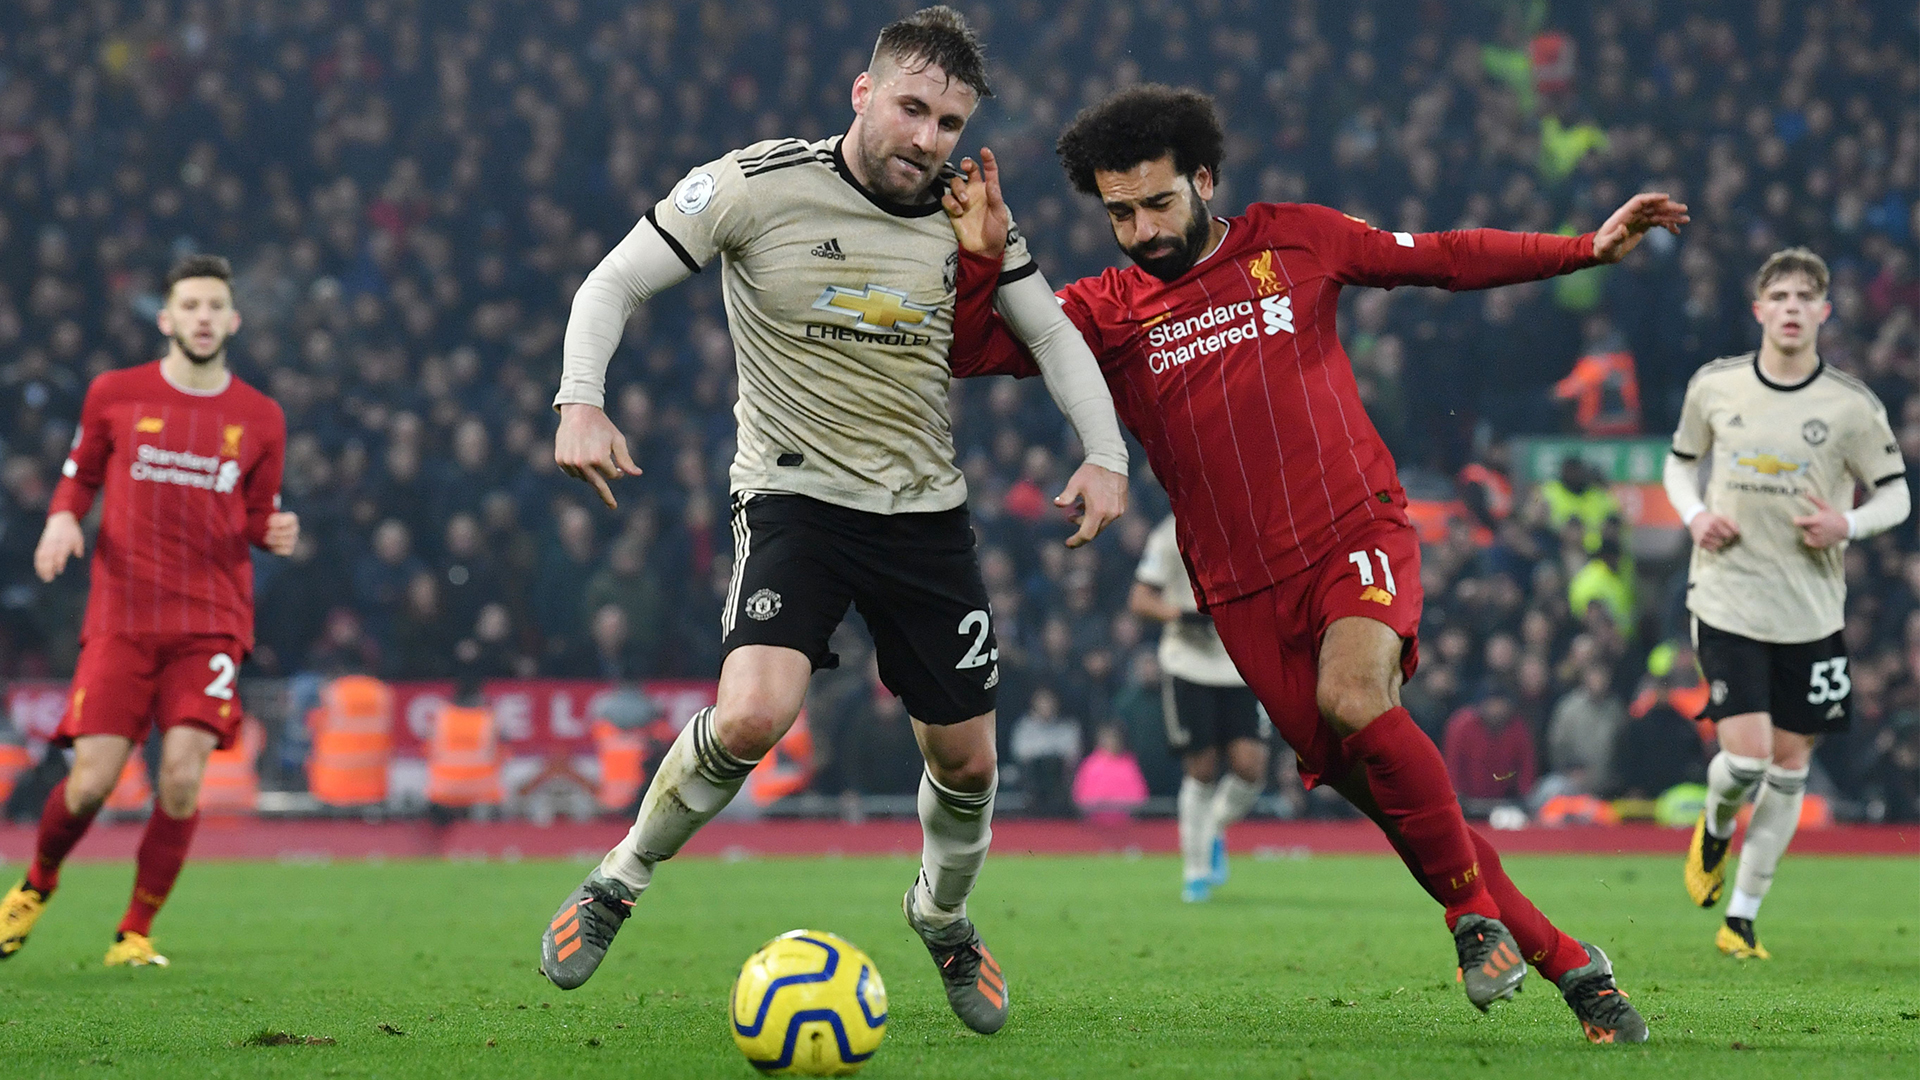 Extended highlights: Liverpool 2, Manchester United 0